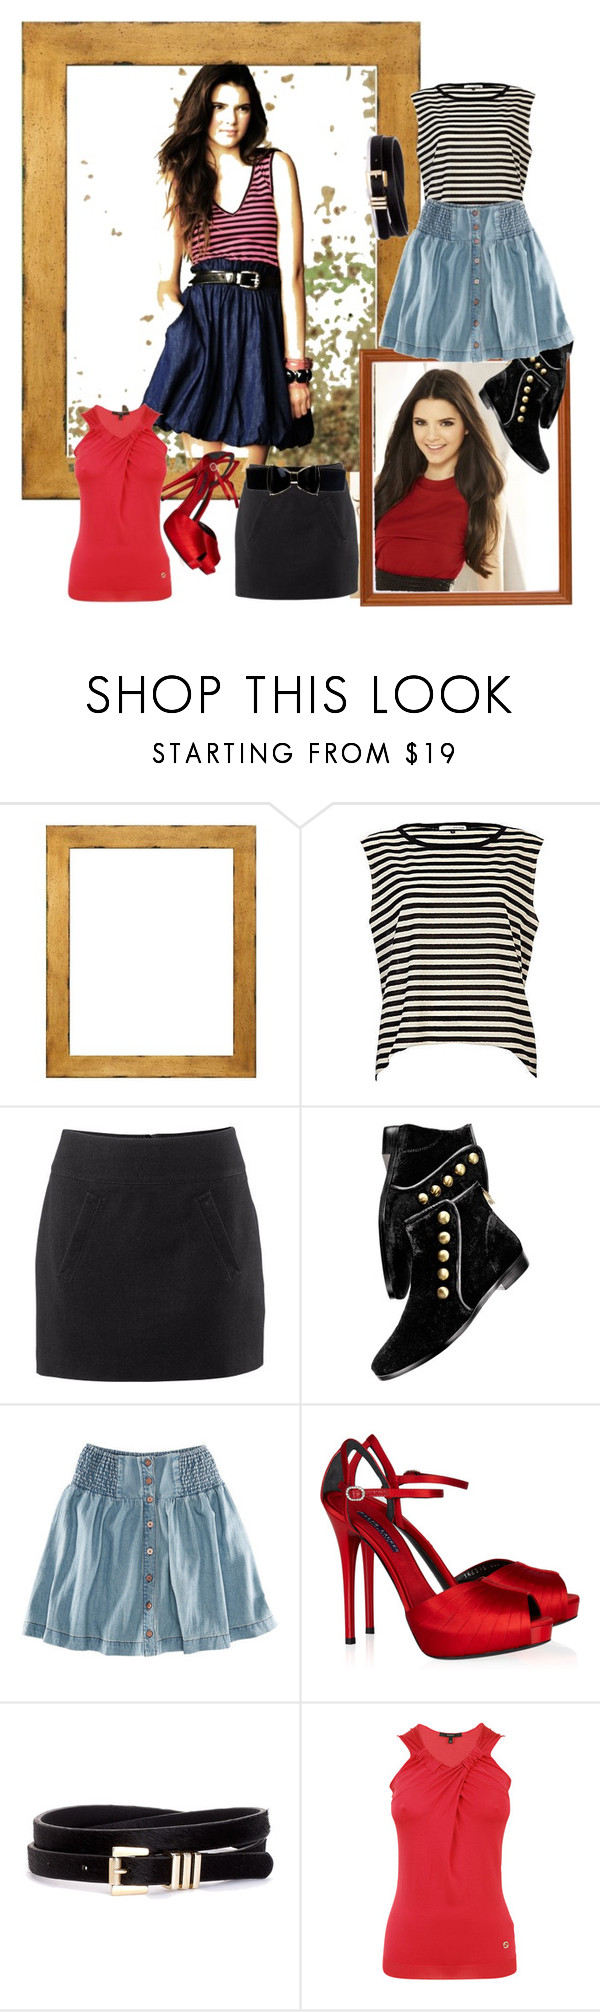 """""""kendall jenner's style ;)"""" by evarose ❤ liked on Polyvore featuring River Island, H&M, House of Harlow 1960, Ralph Lauren Collection, Gucci and STELLA McCARTNEY"""